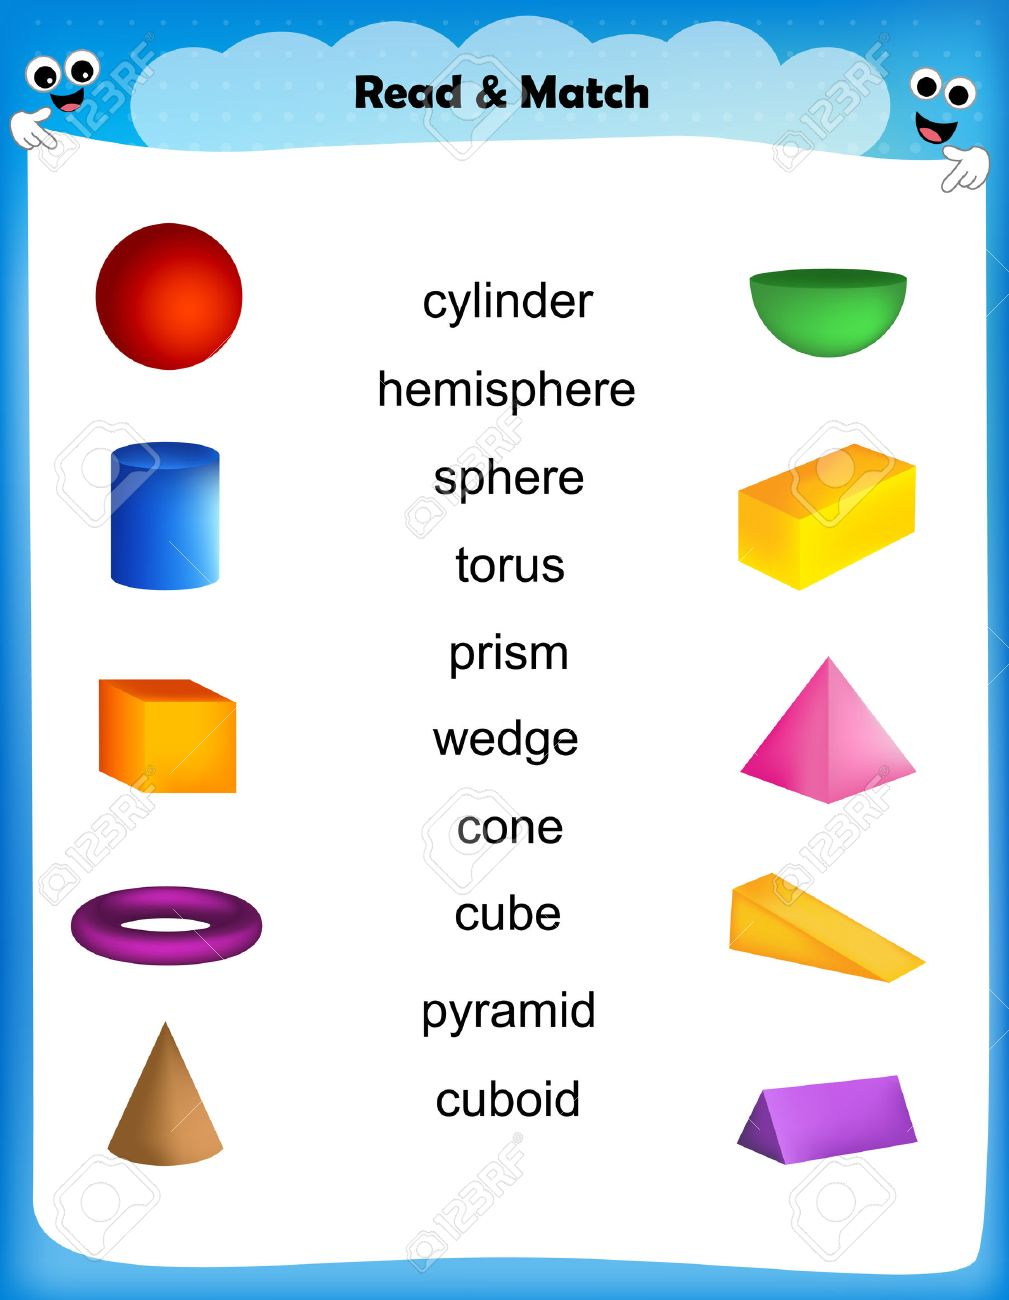 Worksheet Match 3d Shape Images With Their Names Worksheet